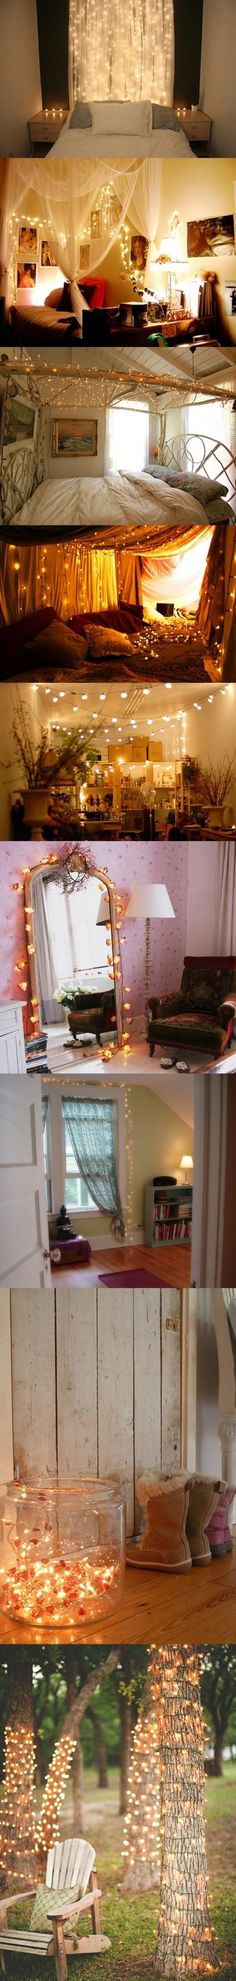 Christmas Lights #home #accessories @Caryn Scanlan Pittman This! Is what i want to do at dads house for my bedroom!! Going to need your help!